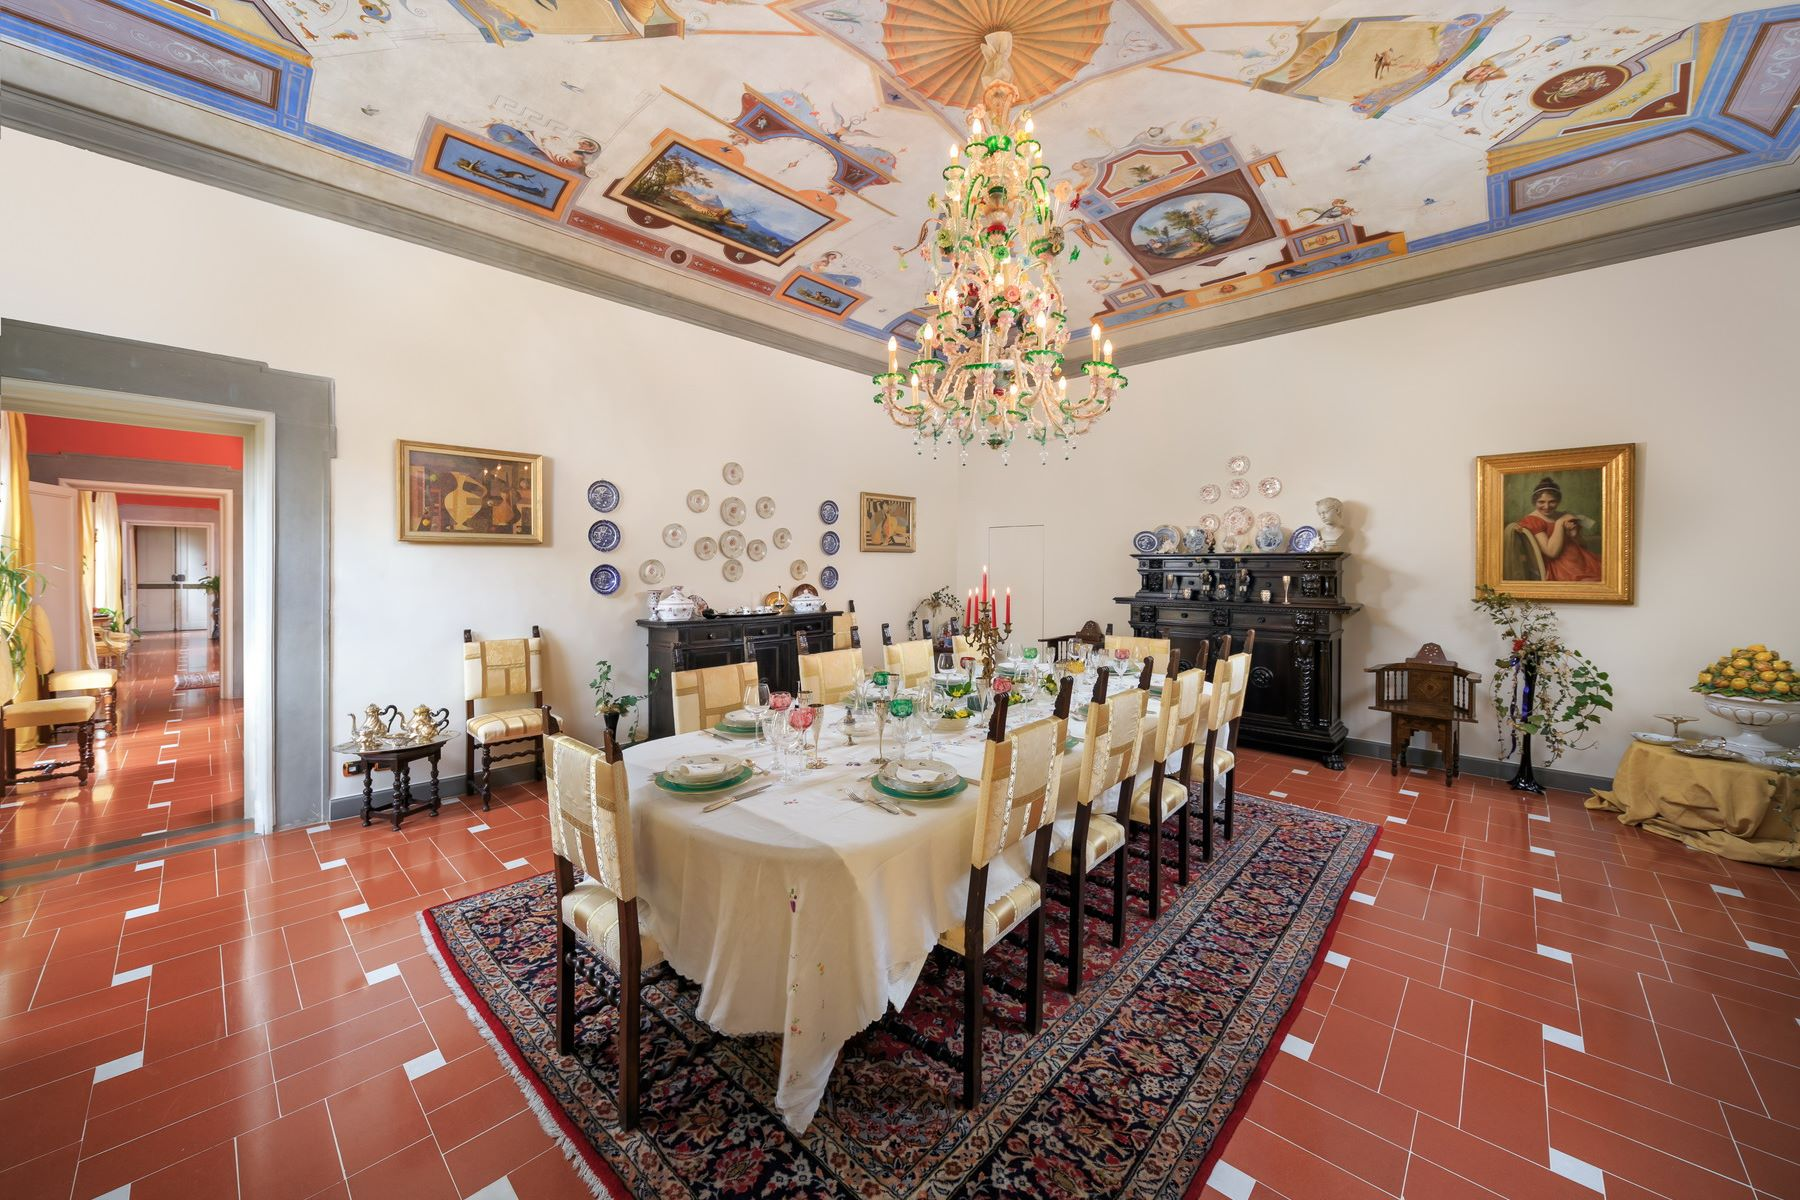 Property for Sale at Prestigious apartment in the heart of the Oltrarno Firenze, Florence Italy